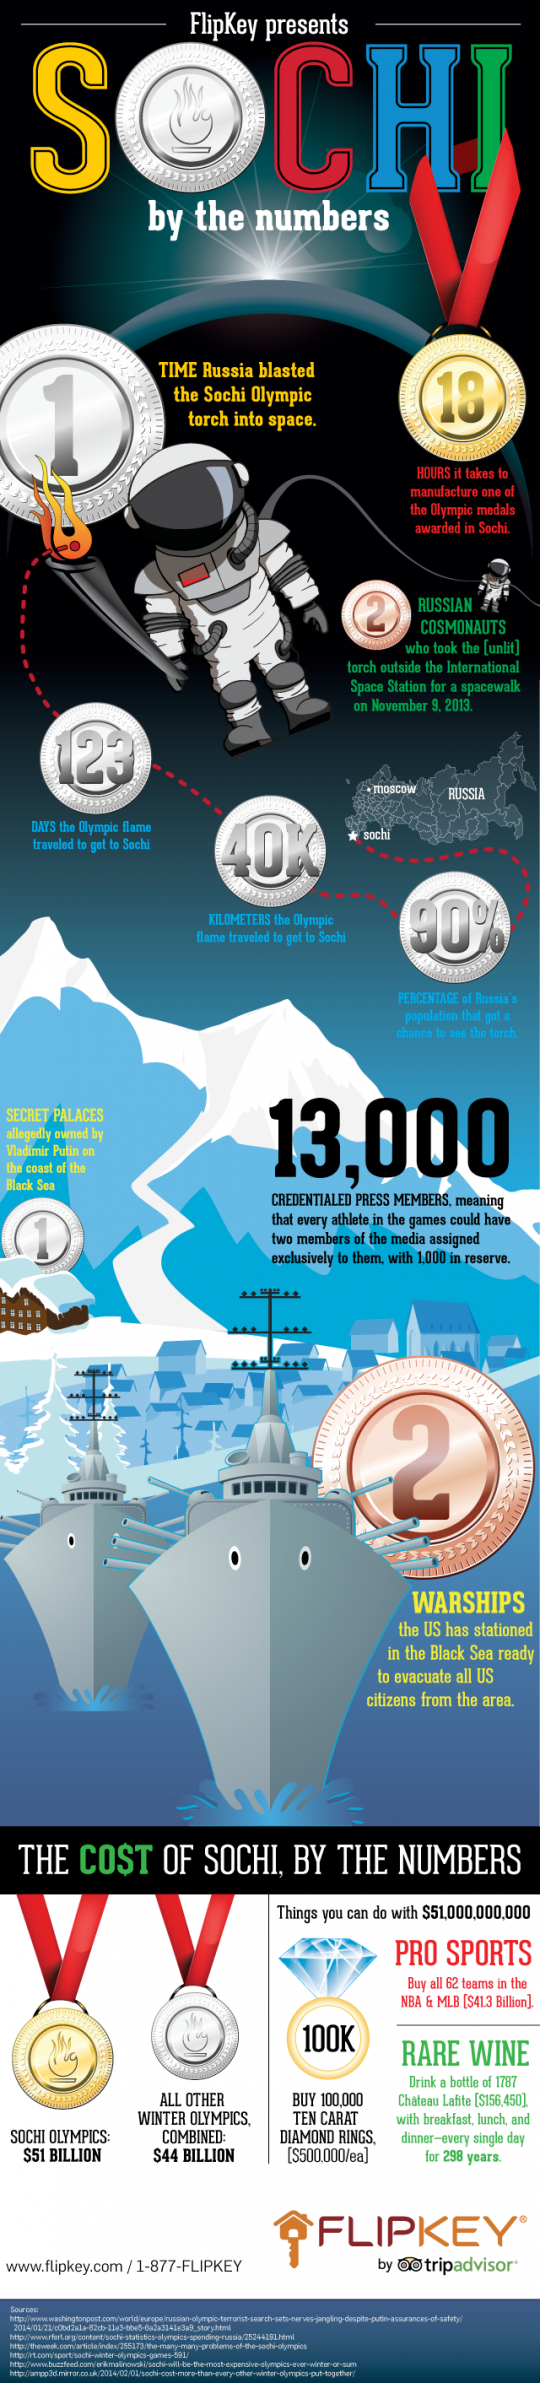 Sochi by the Numbers